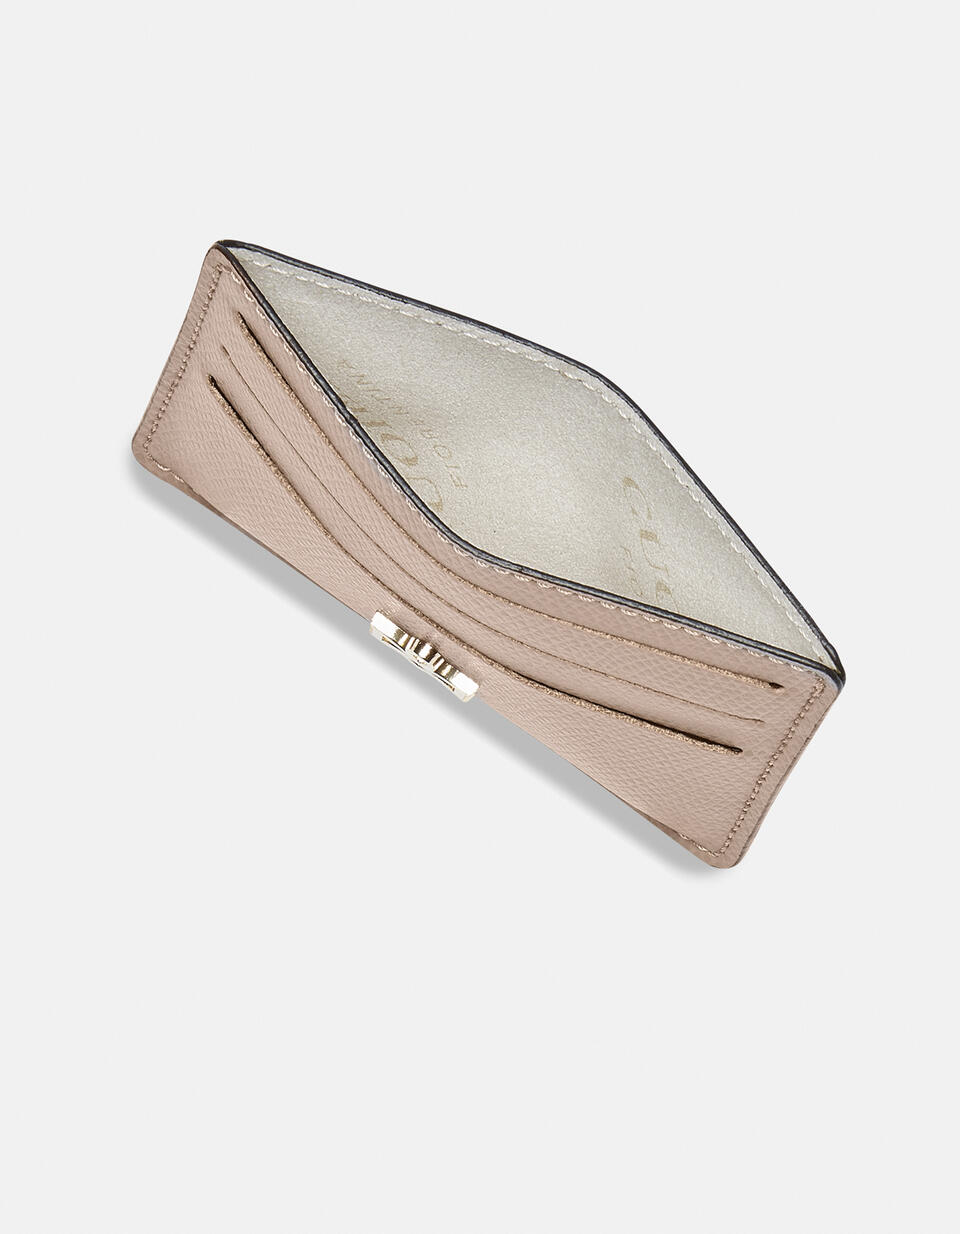 Bella credit car holder with space for banknotes LIGHT PINK Cuoieria Fiorentina